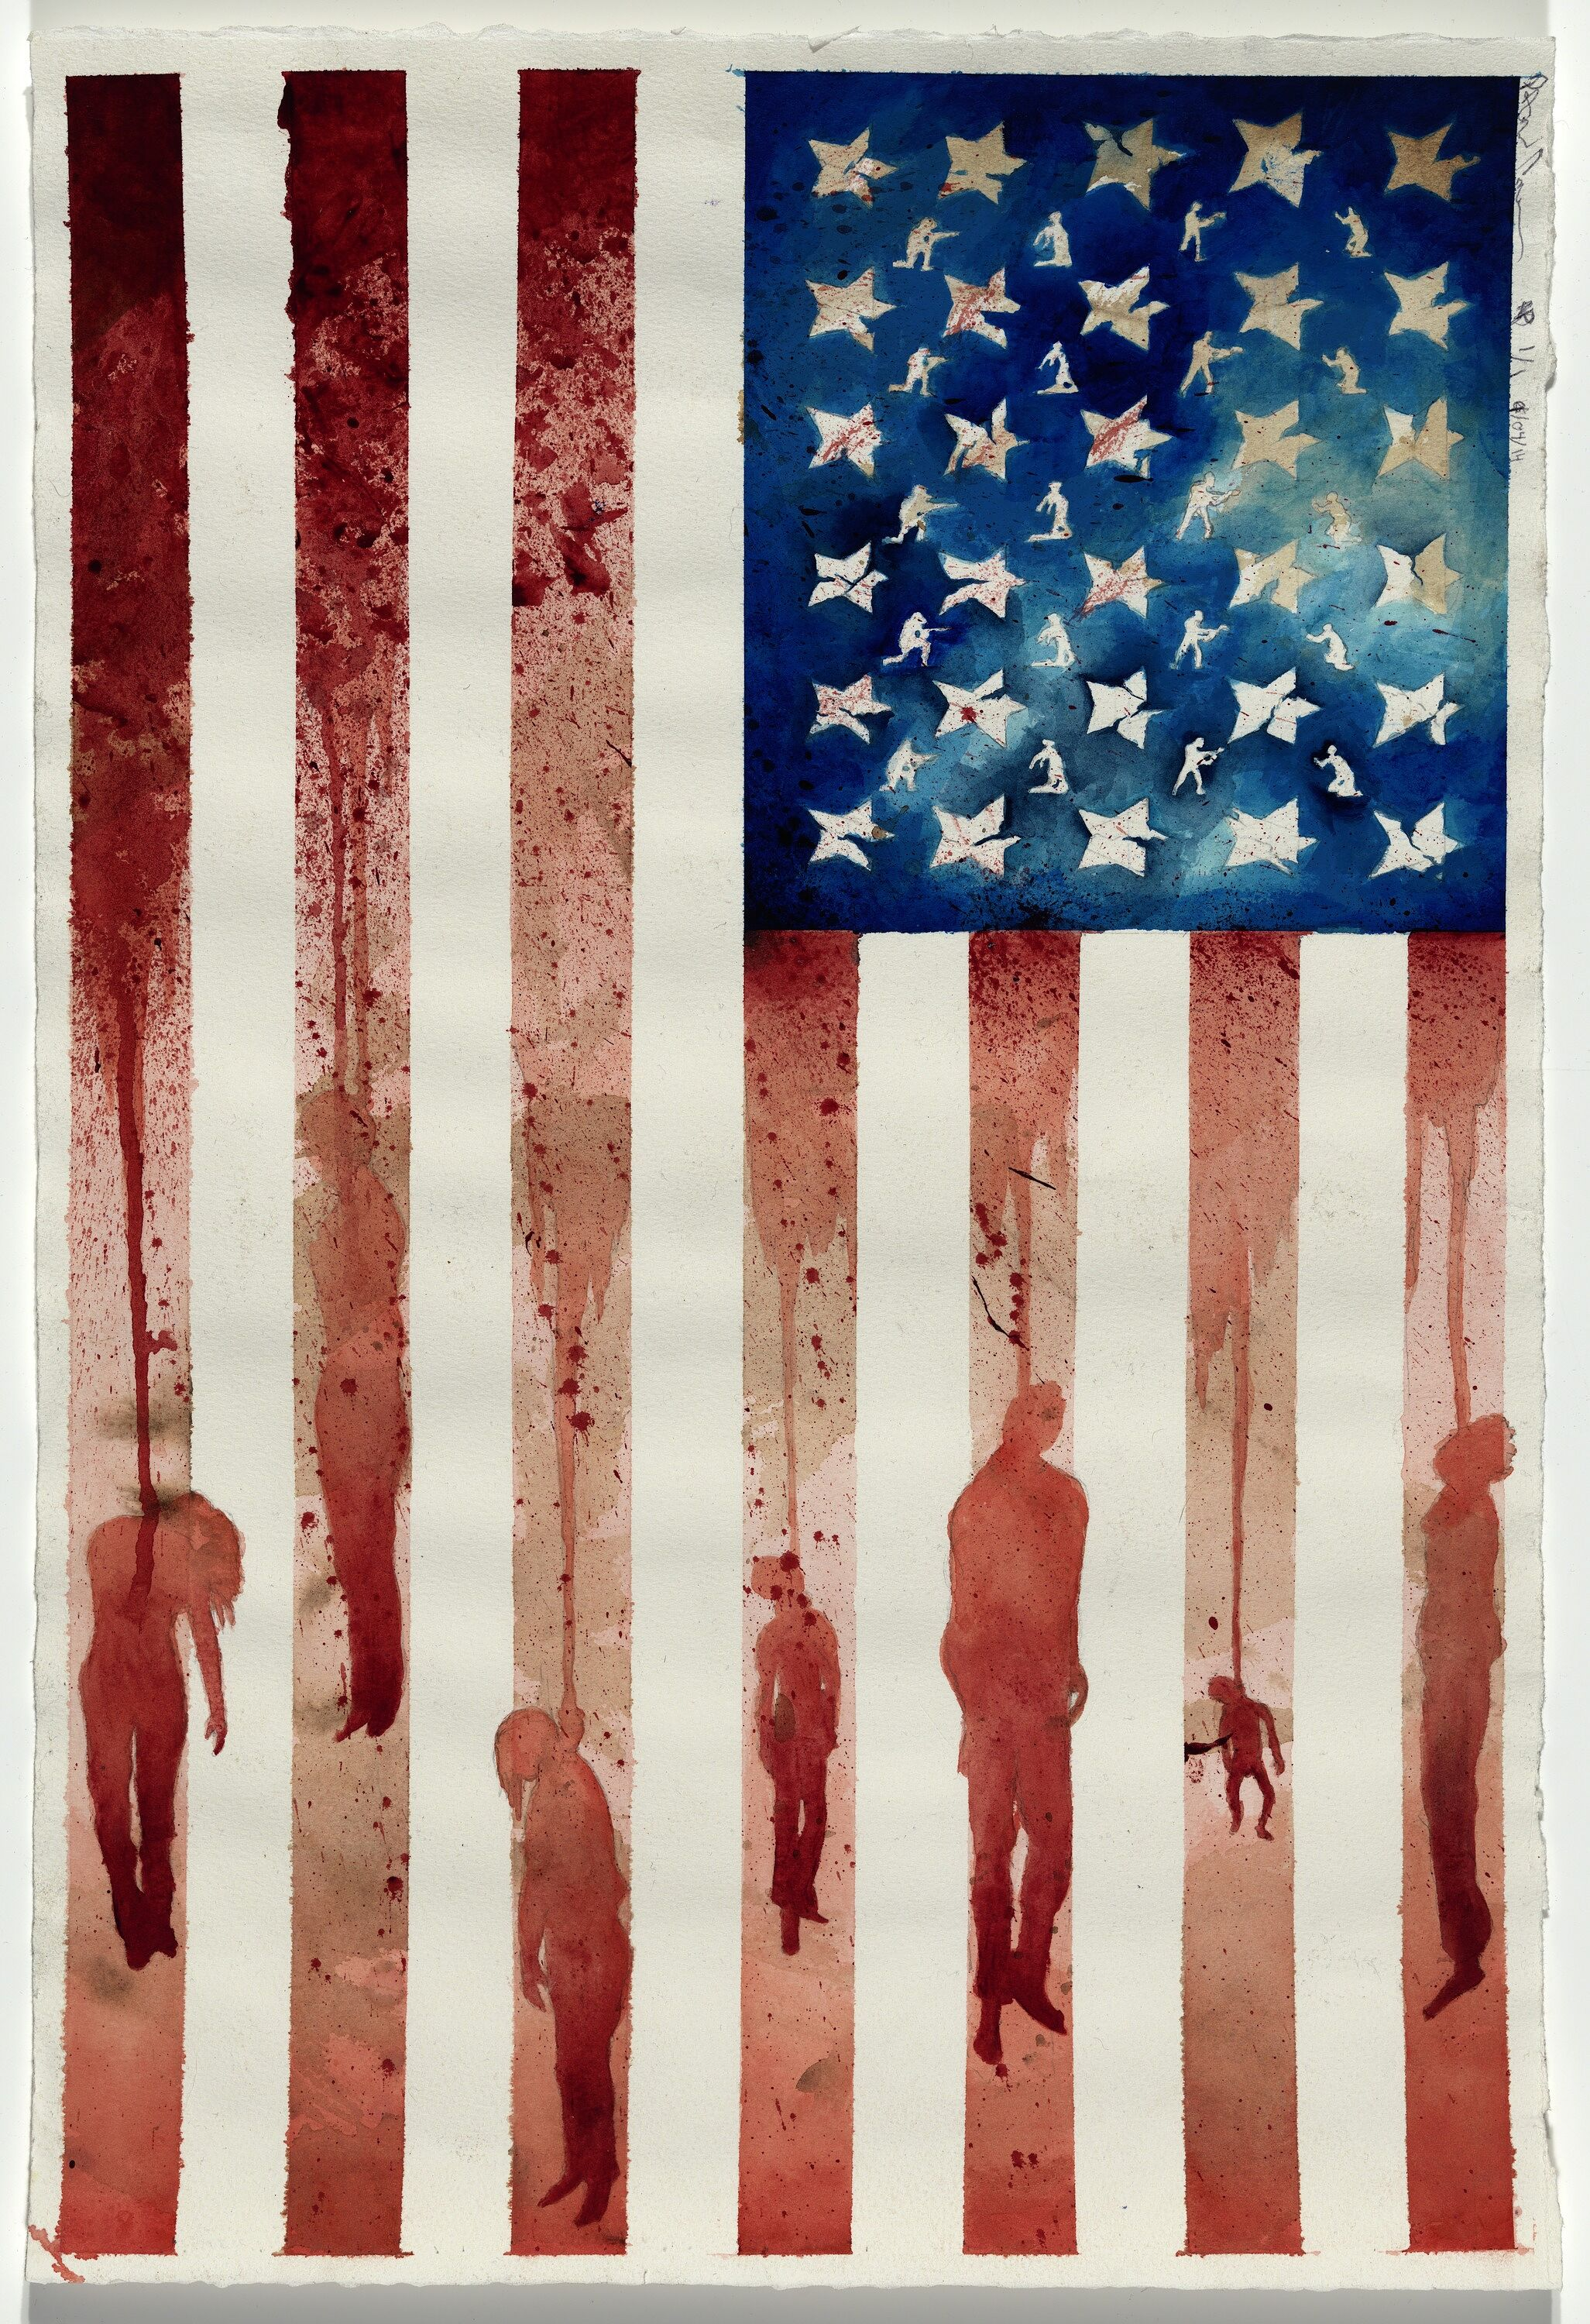 New Age of Slavery, 2014. Watercolor on paper. Collection of the Smithsonian National Museum of African American History and Culture. © Patrick Campbell Art and Illustration.